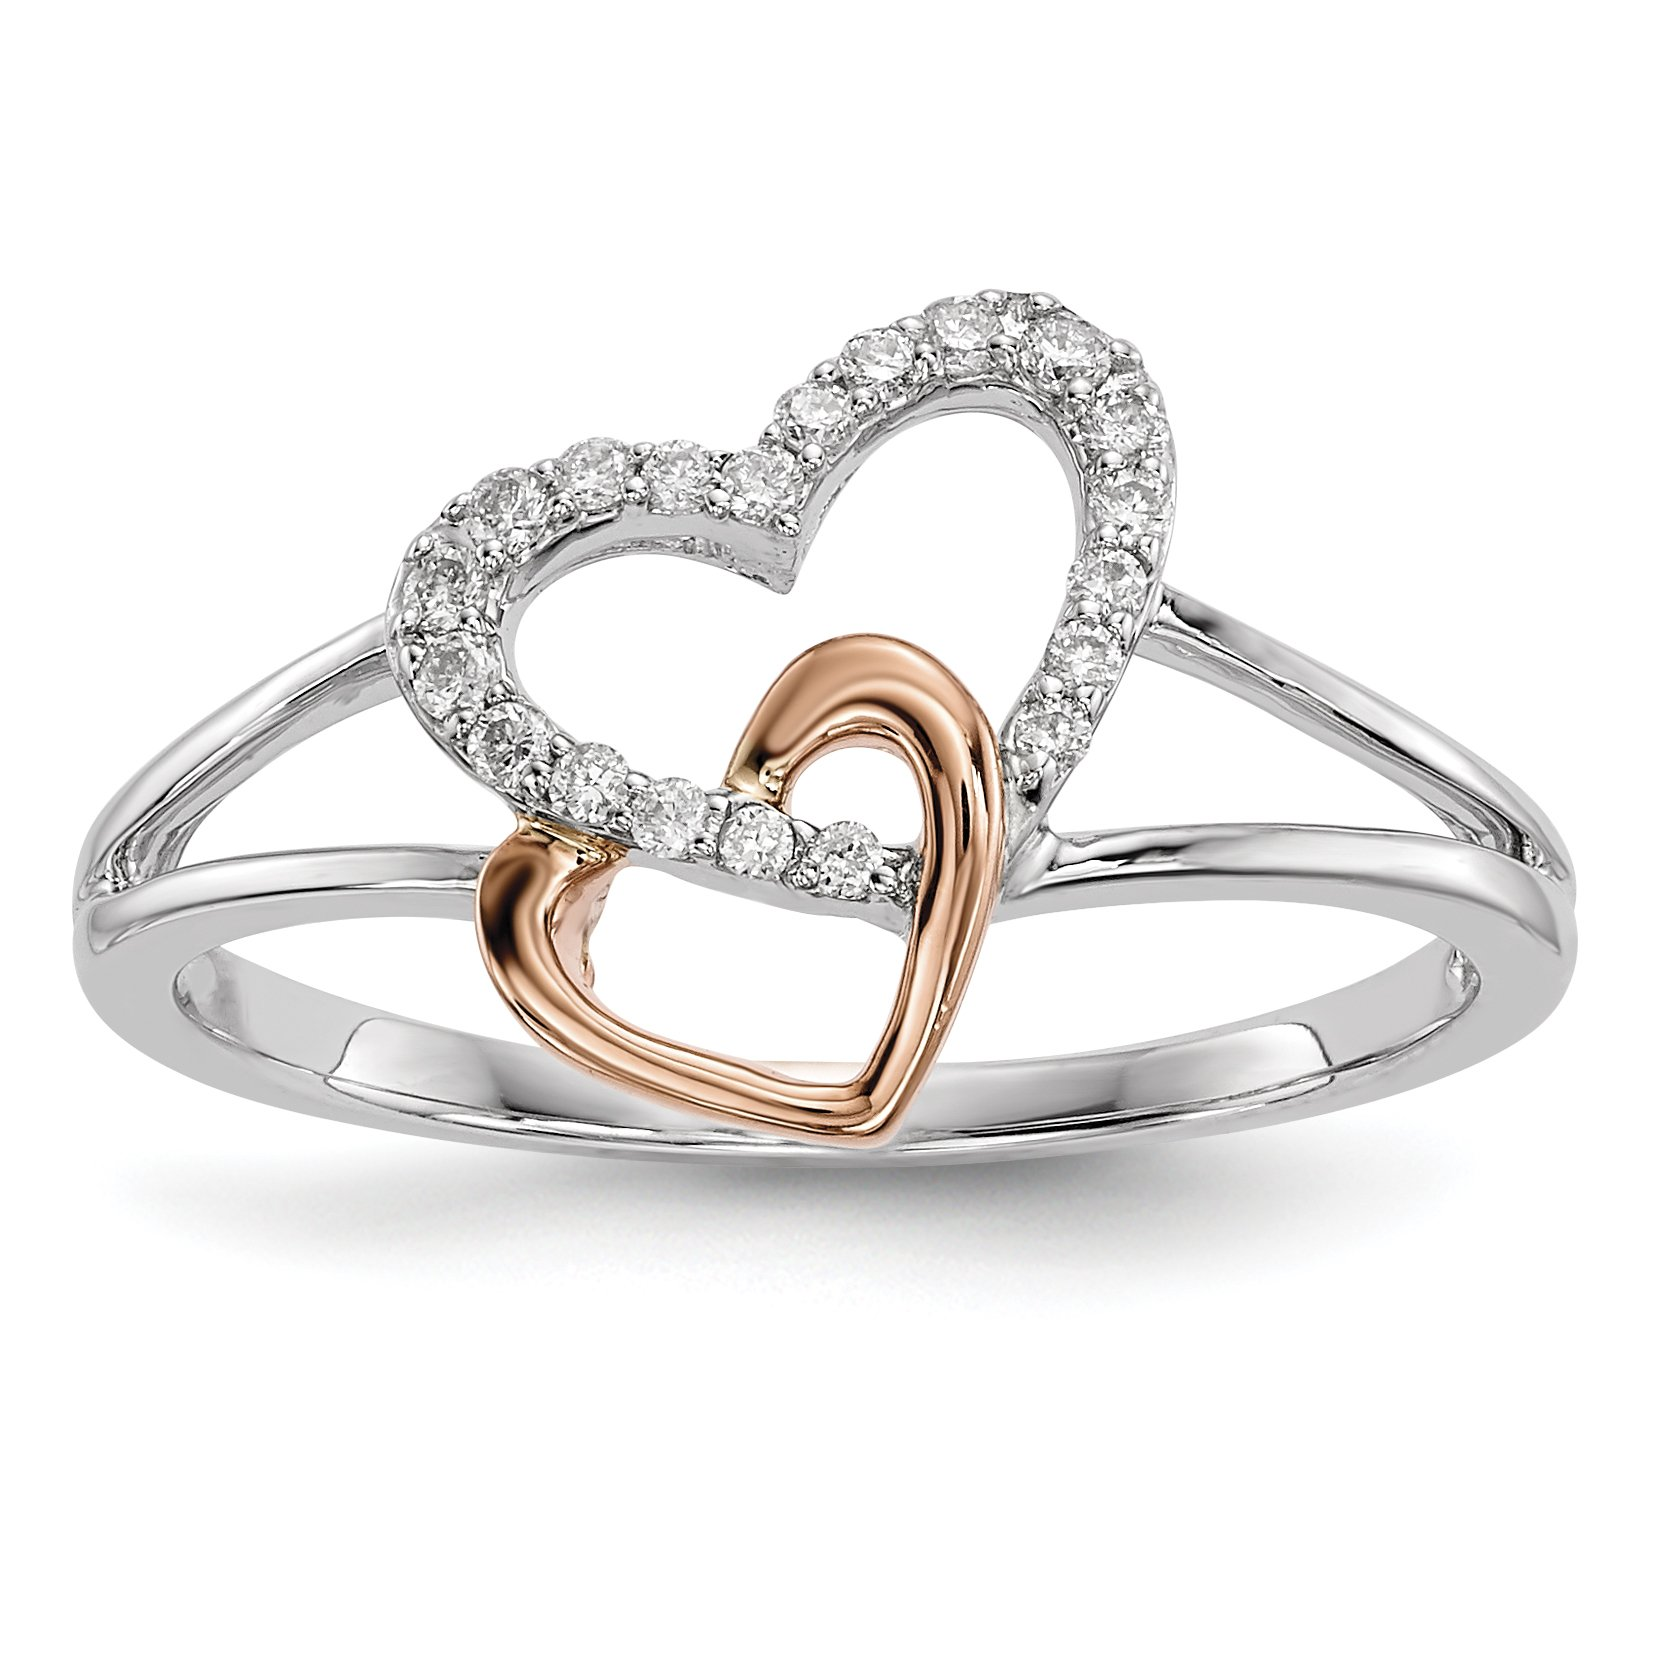 ICE CARATS 14k White/rose Gold Diamond Band Ring Size 6.75 Fine Jewelry Gift Set For Women Heart